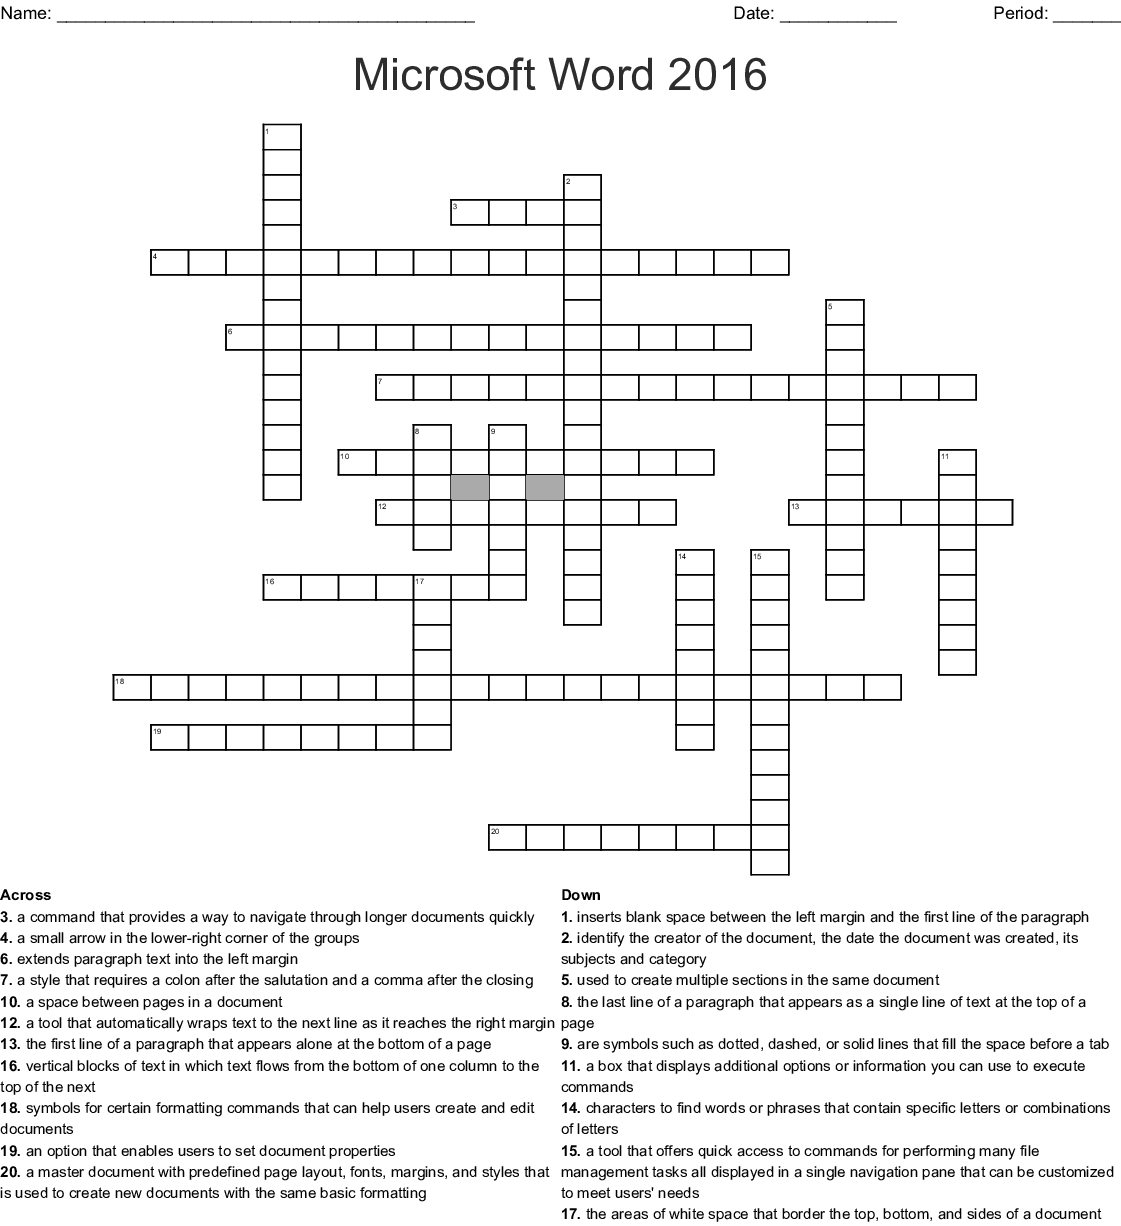 Microsoft Word & PowerPoint Vocabulary Crossword - WordMint